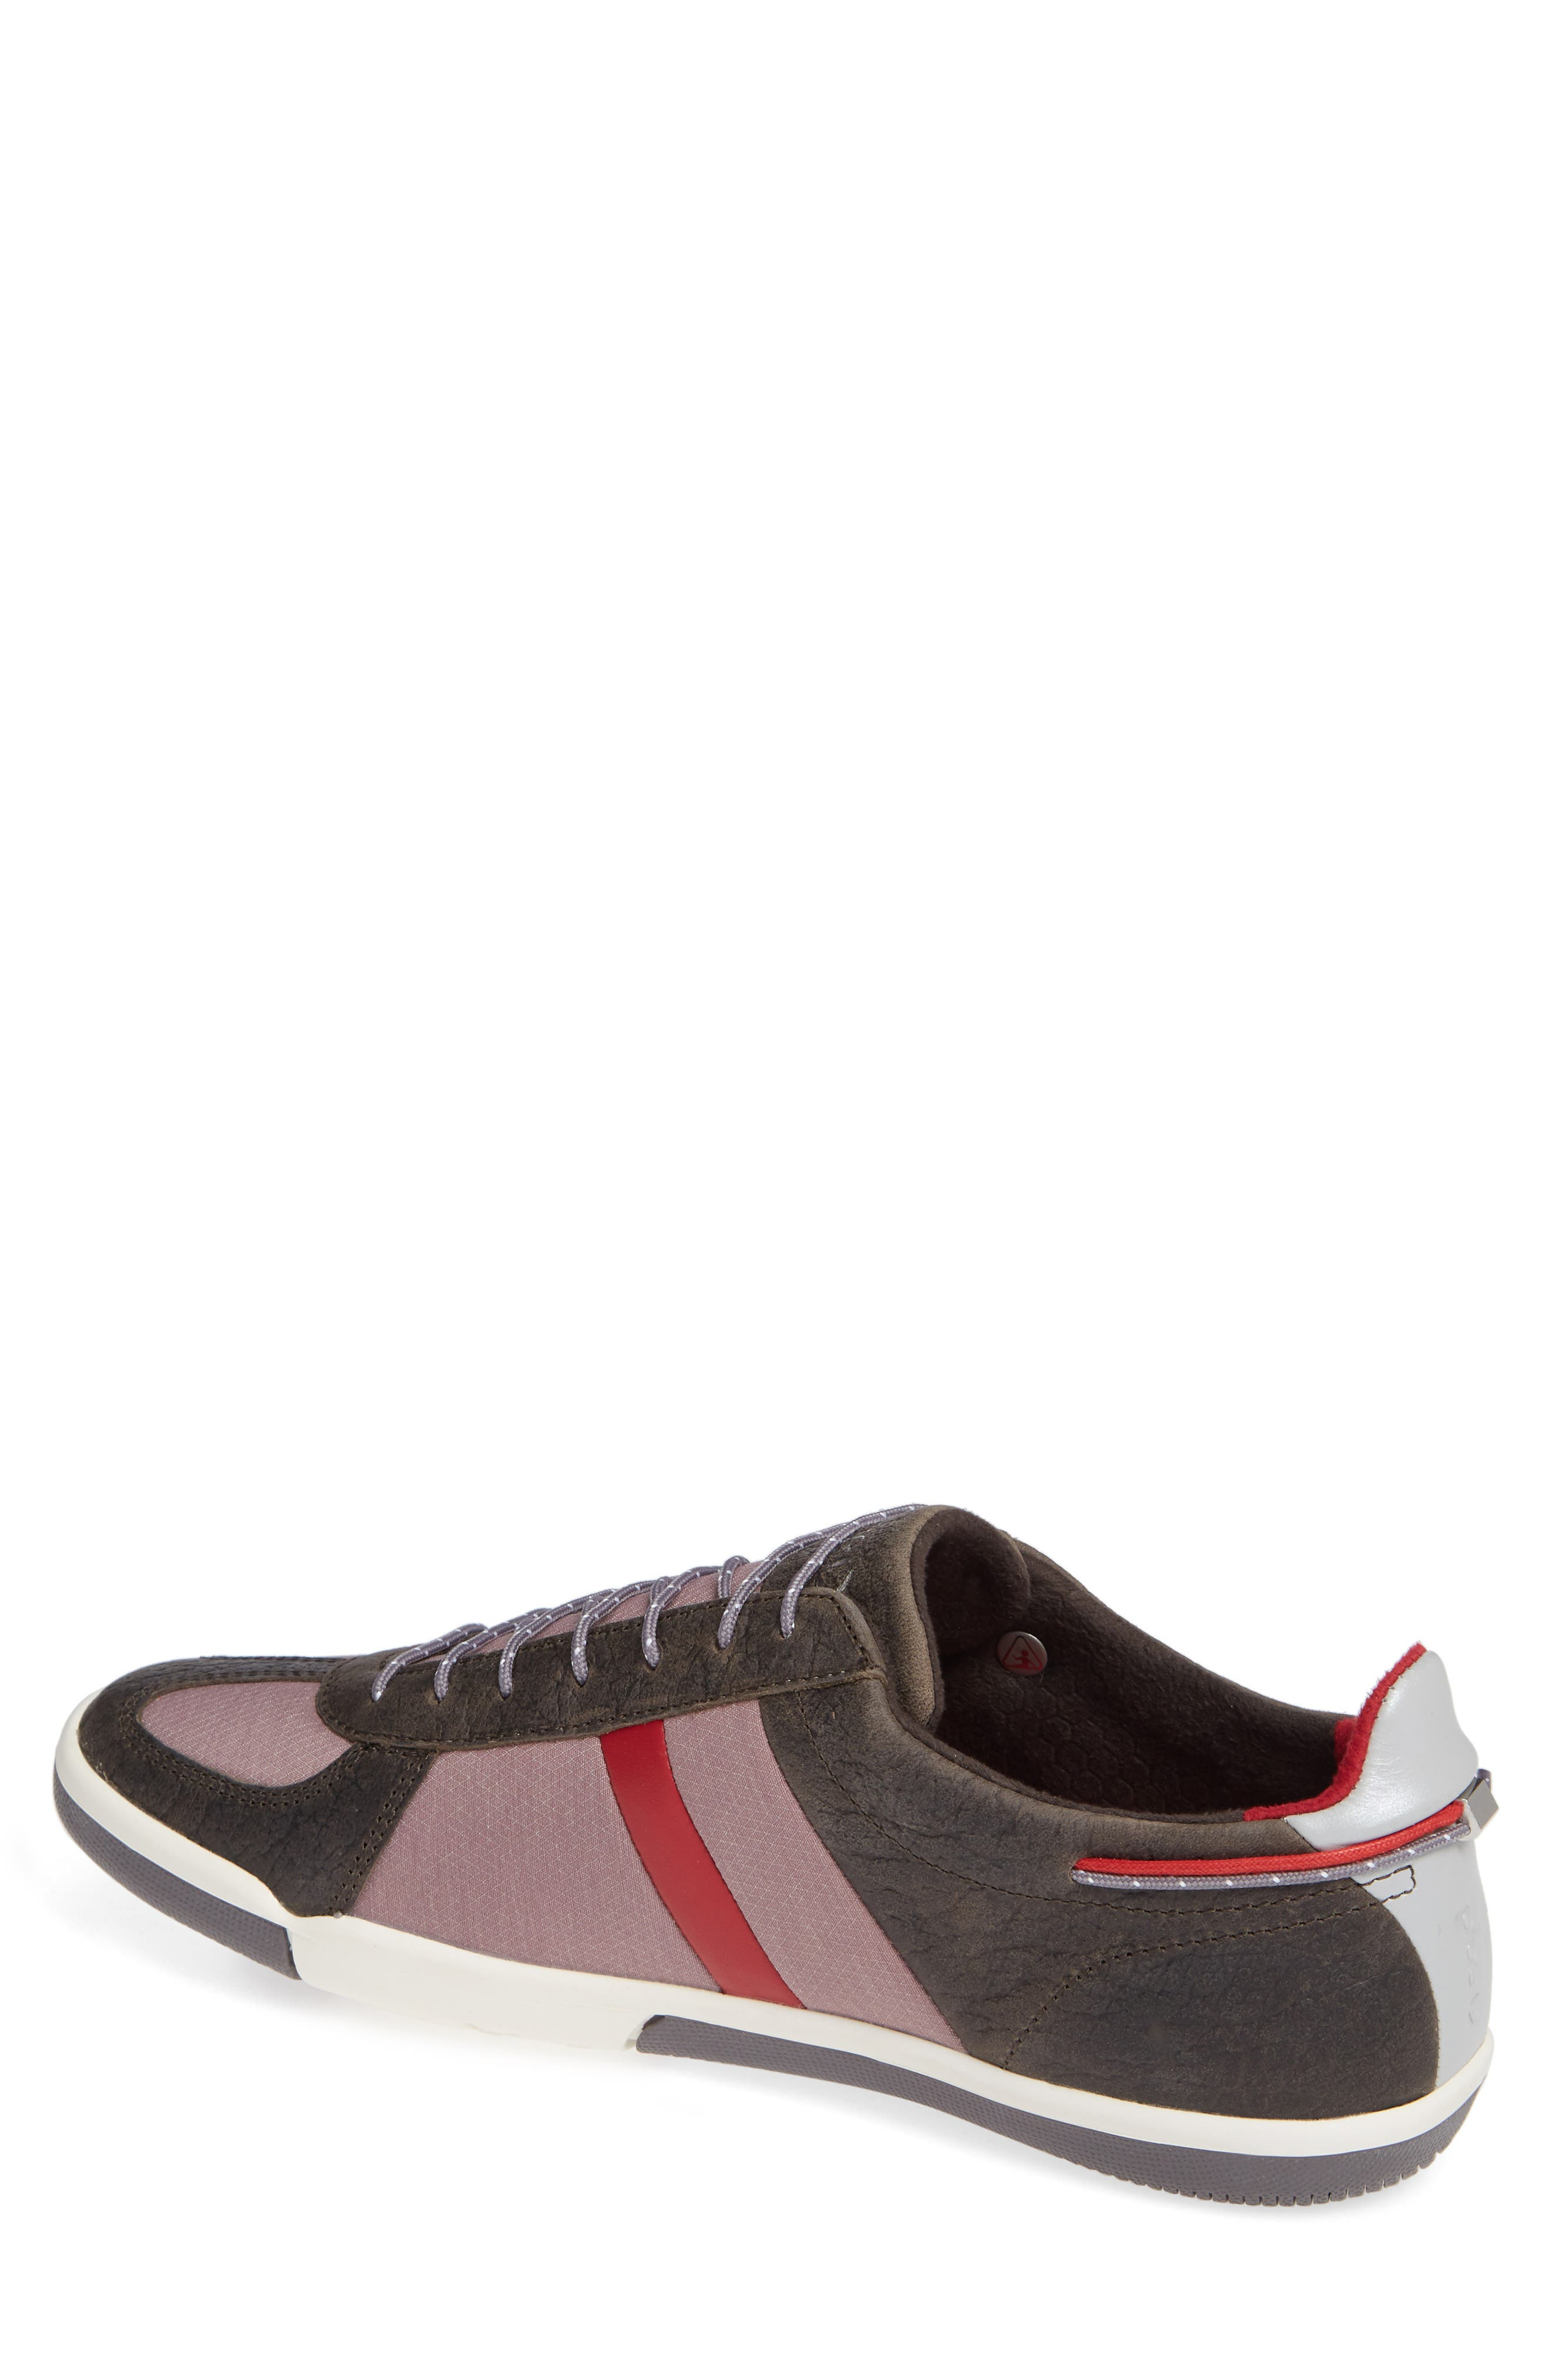 Butler Low-Top Sneaker,                             Alternate thumbnail 2, color,                             EMBER BROWN LEATHER